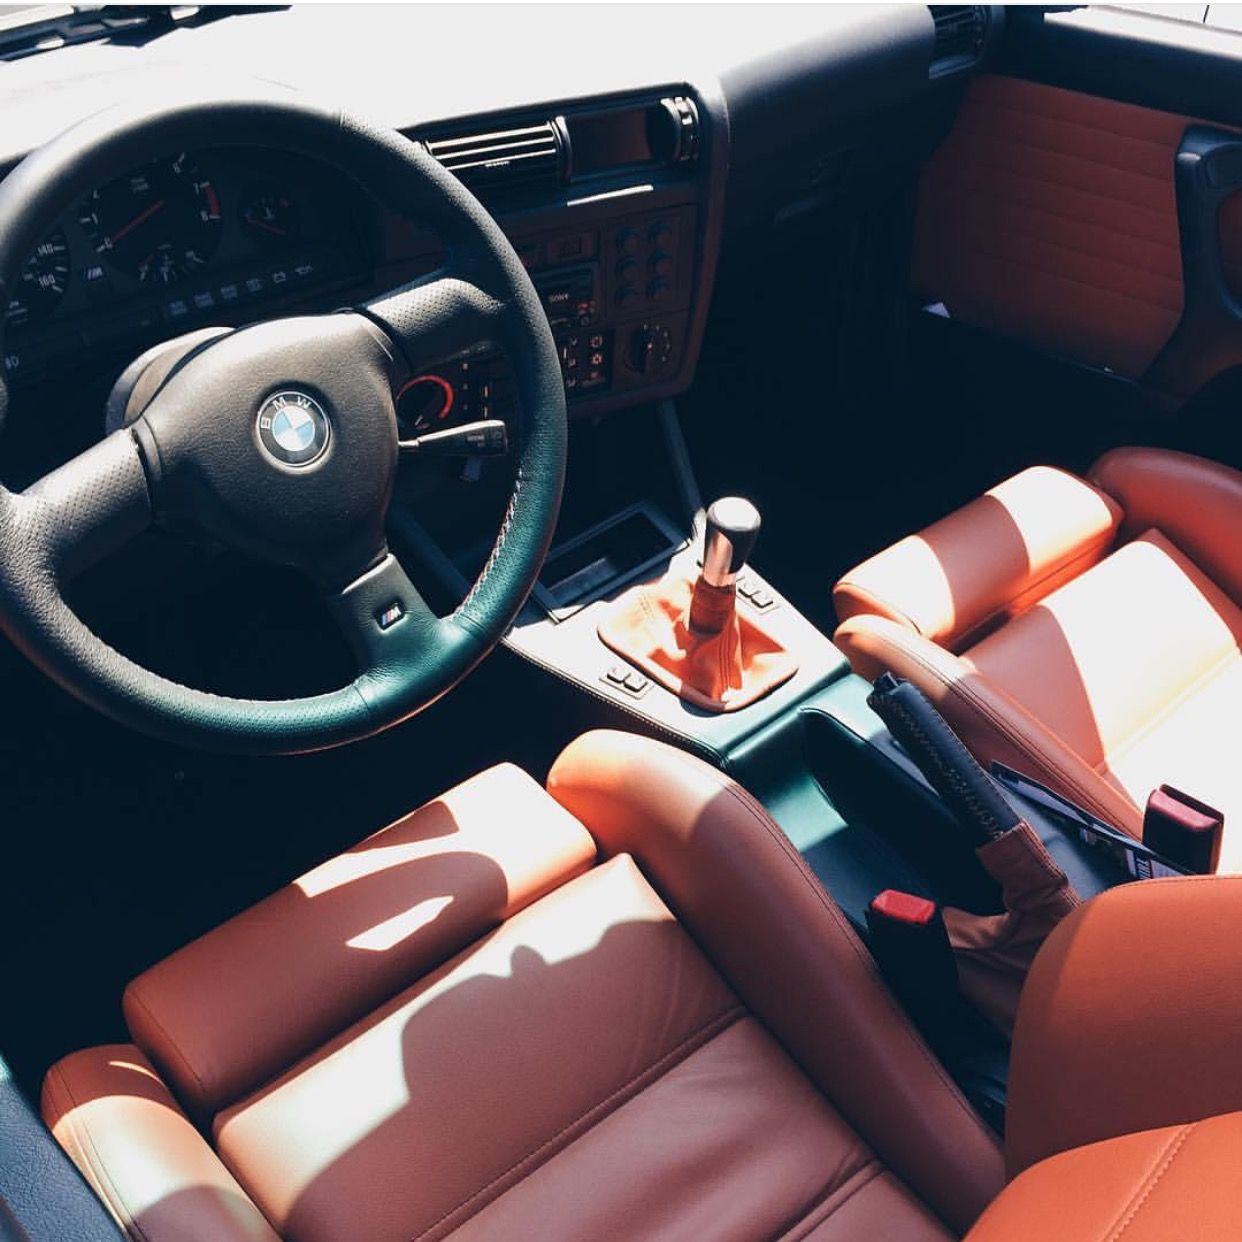 BMW E30 interior! Pic _dpod_ on Instagram Bmw e30, Bmw